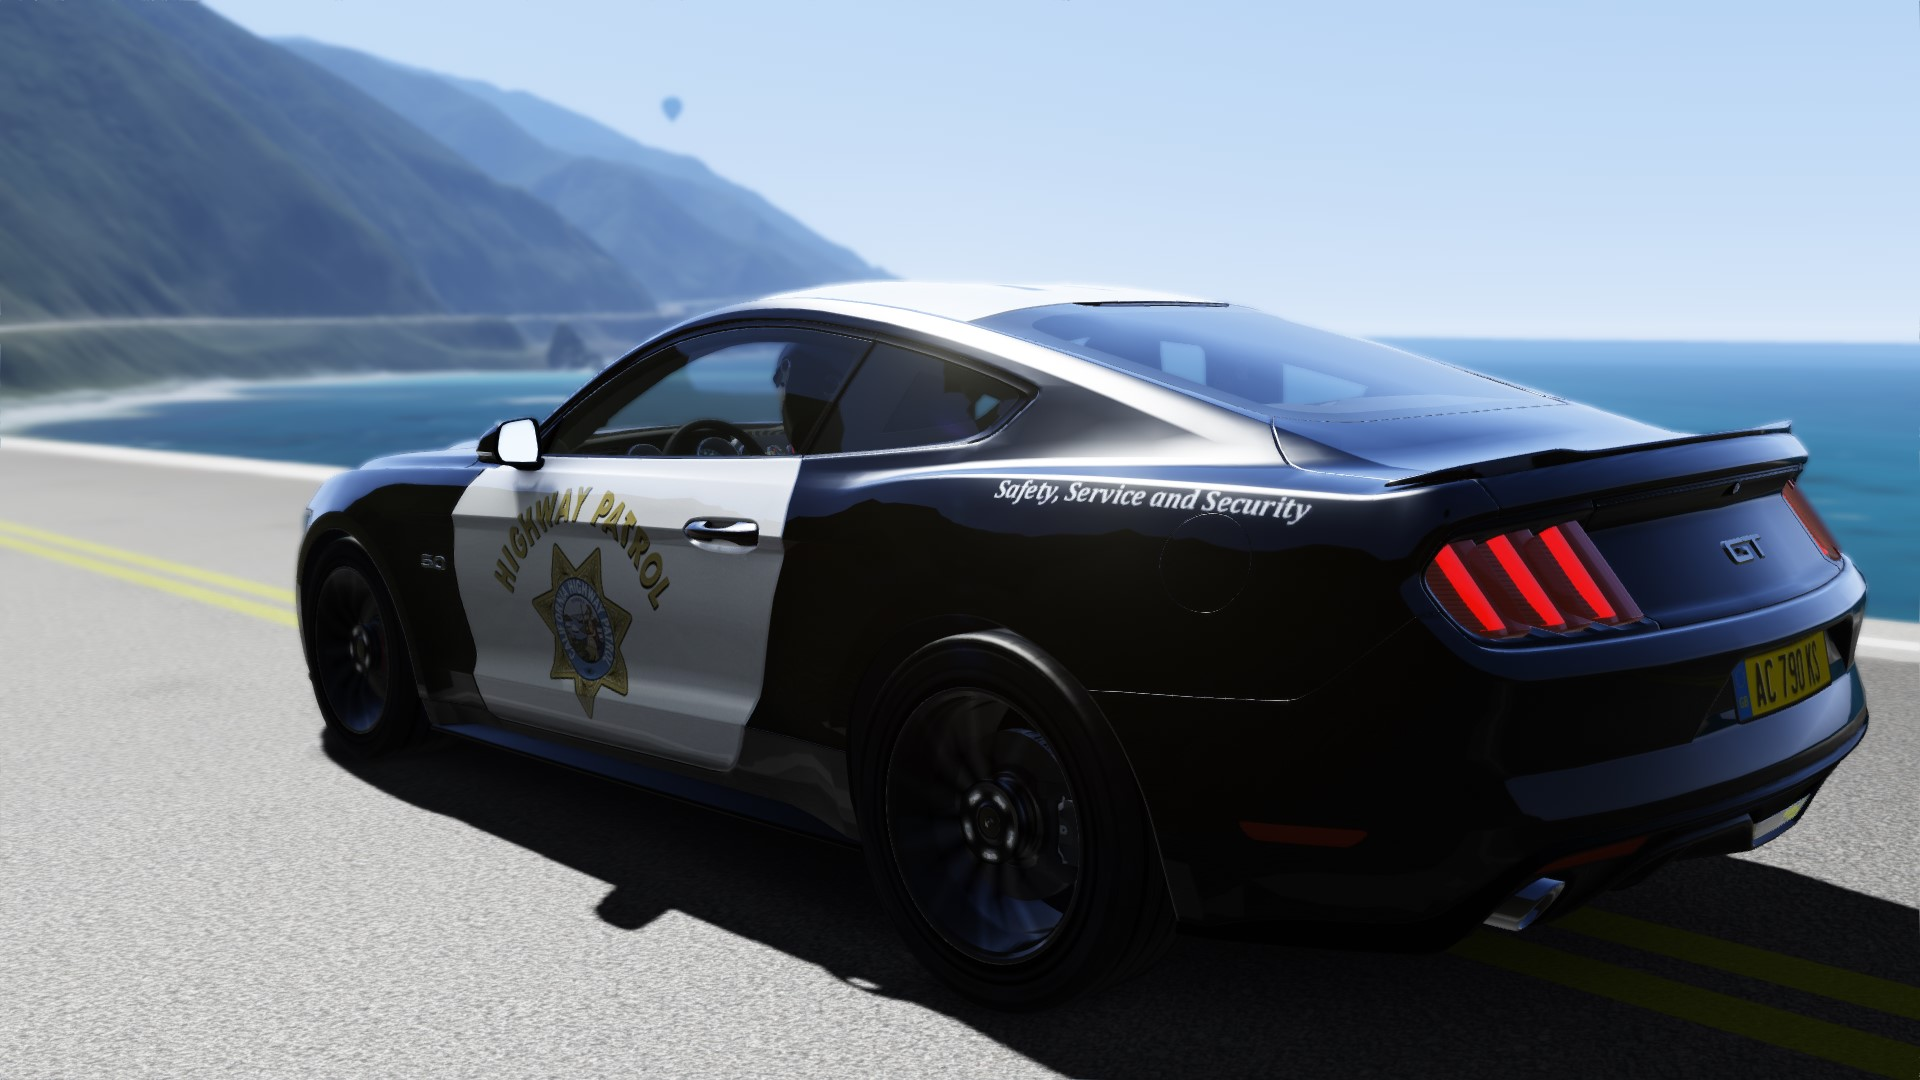 Screenshot_ks_ford_mustang_2015_pacific_coast_27-10-116-21-46-27.jpg